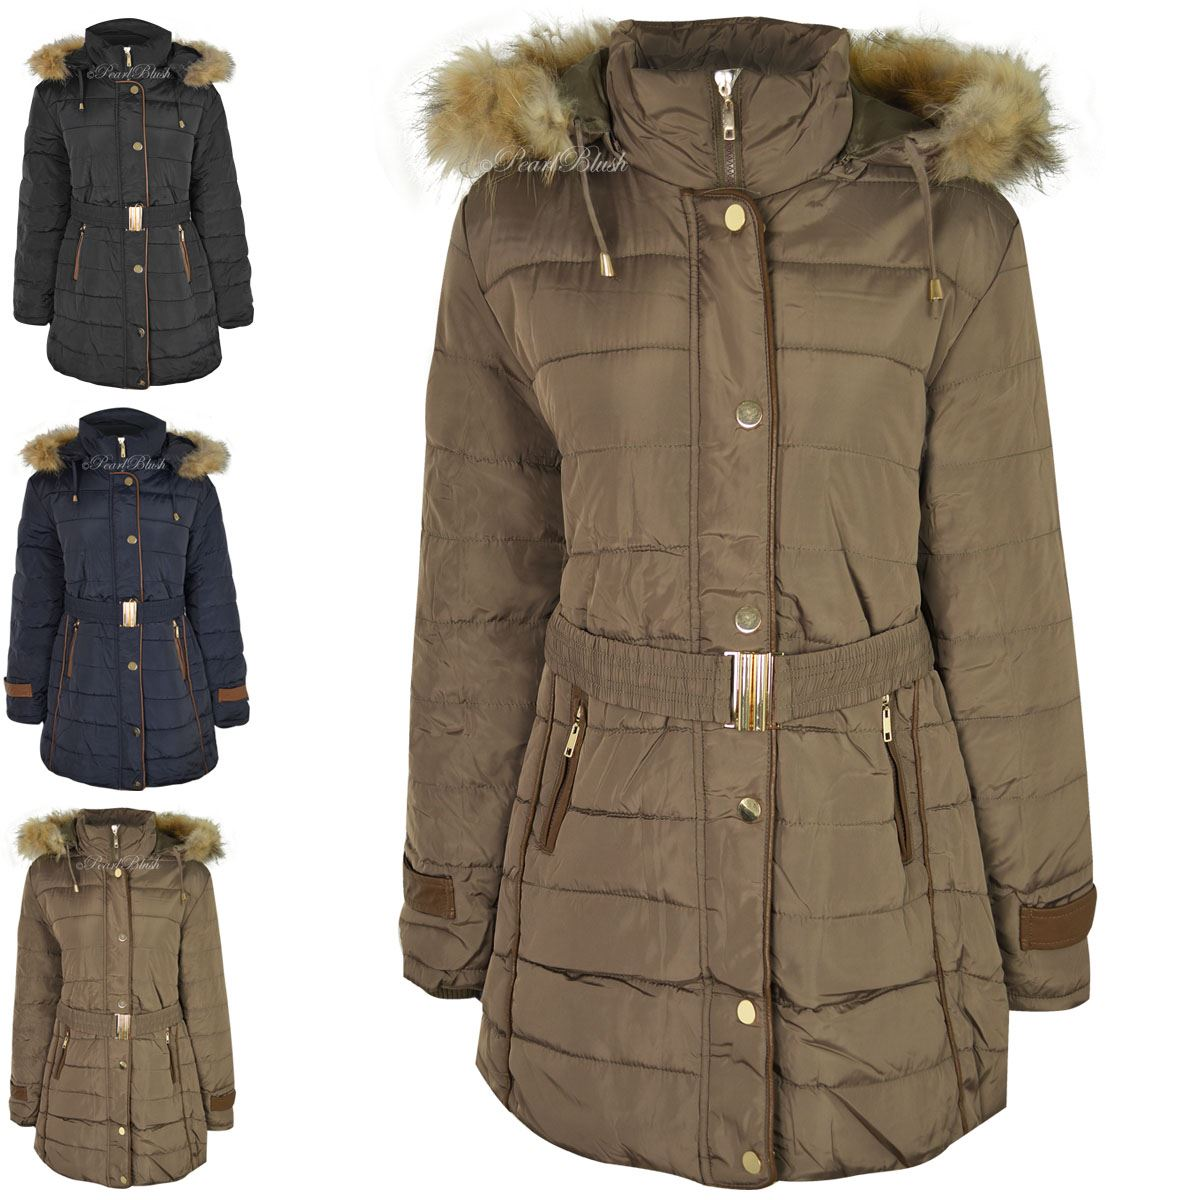 Shop the latest styles of Womens Hooded Coats at Macys. Check out our designer collection of chic coats including peacoats, trench coats, puffer coats and more! Macy's Presents: The Edit- A curated mix of fashion and inspiration Check It Out. Free Shipping with $75 purchase + .